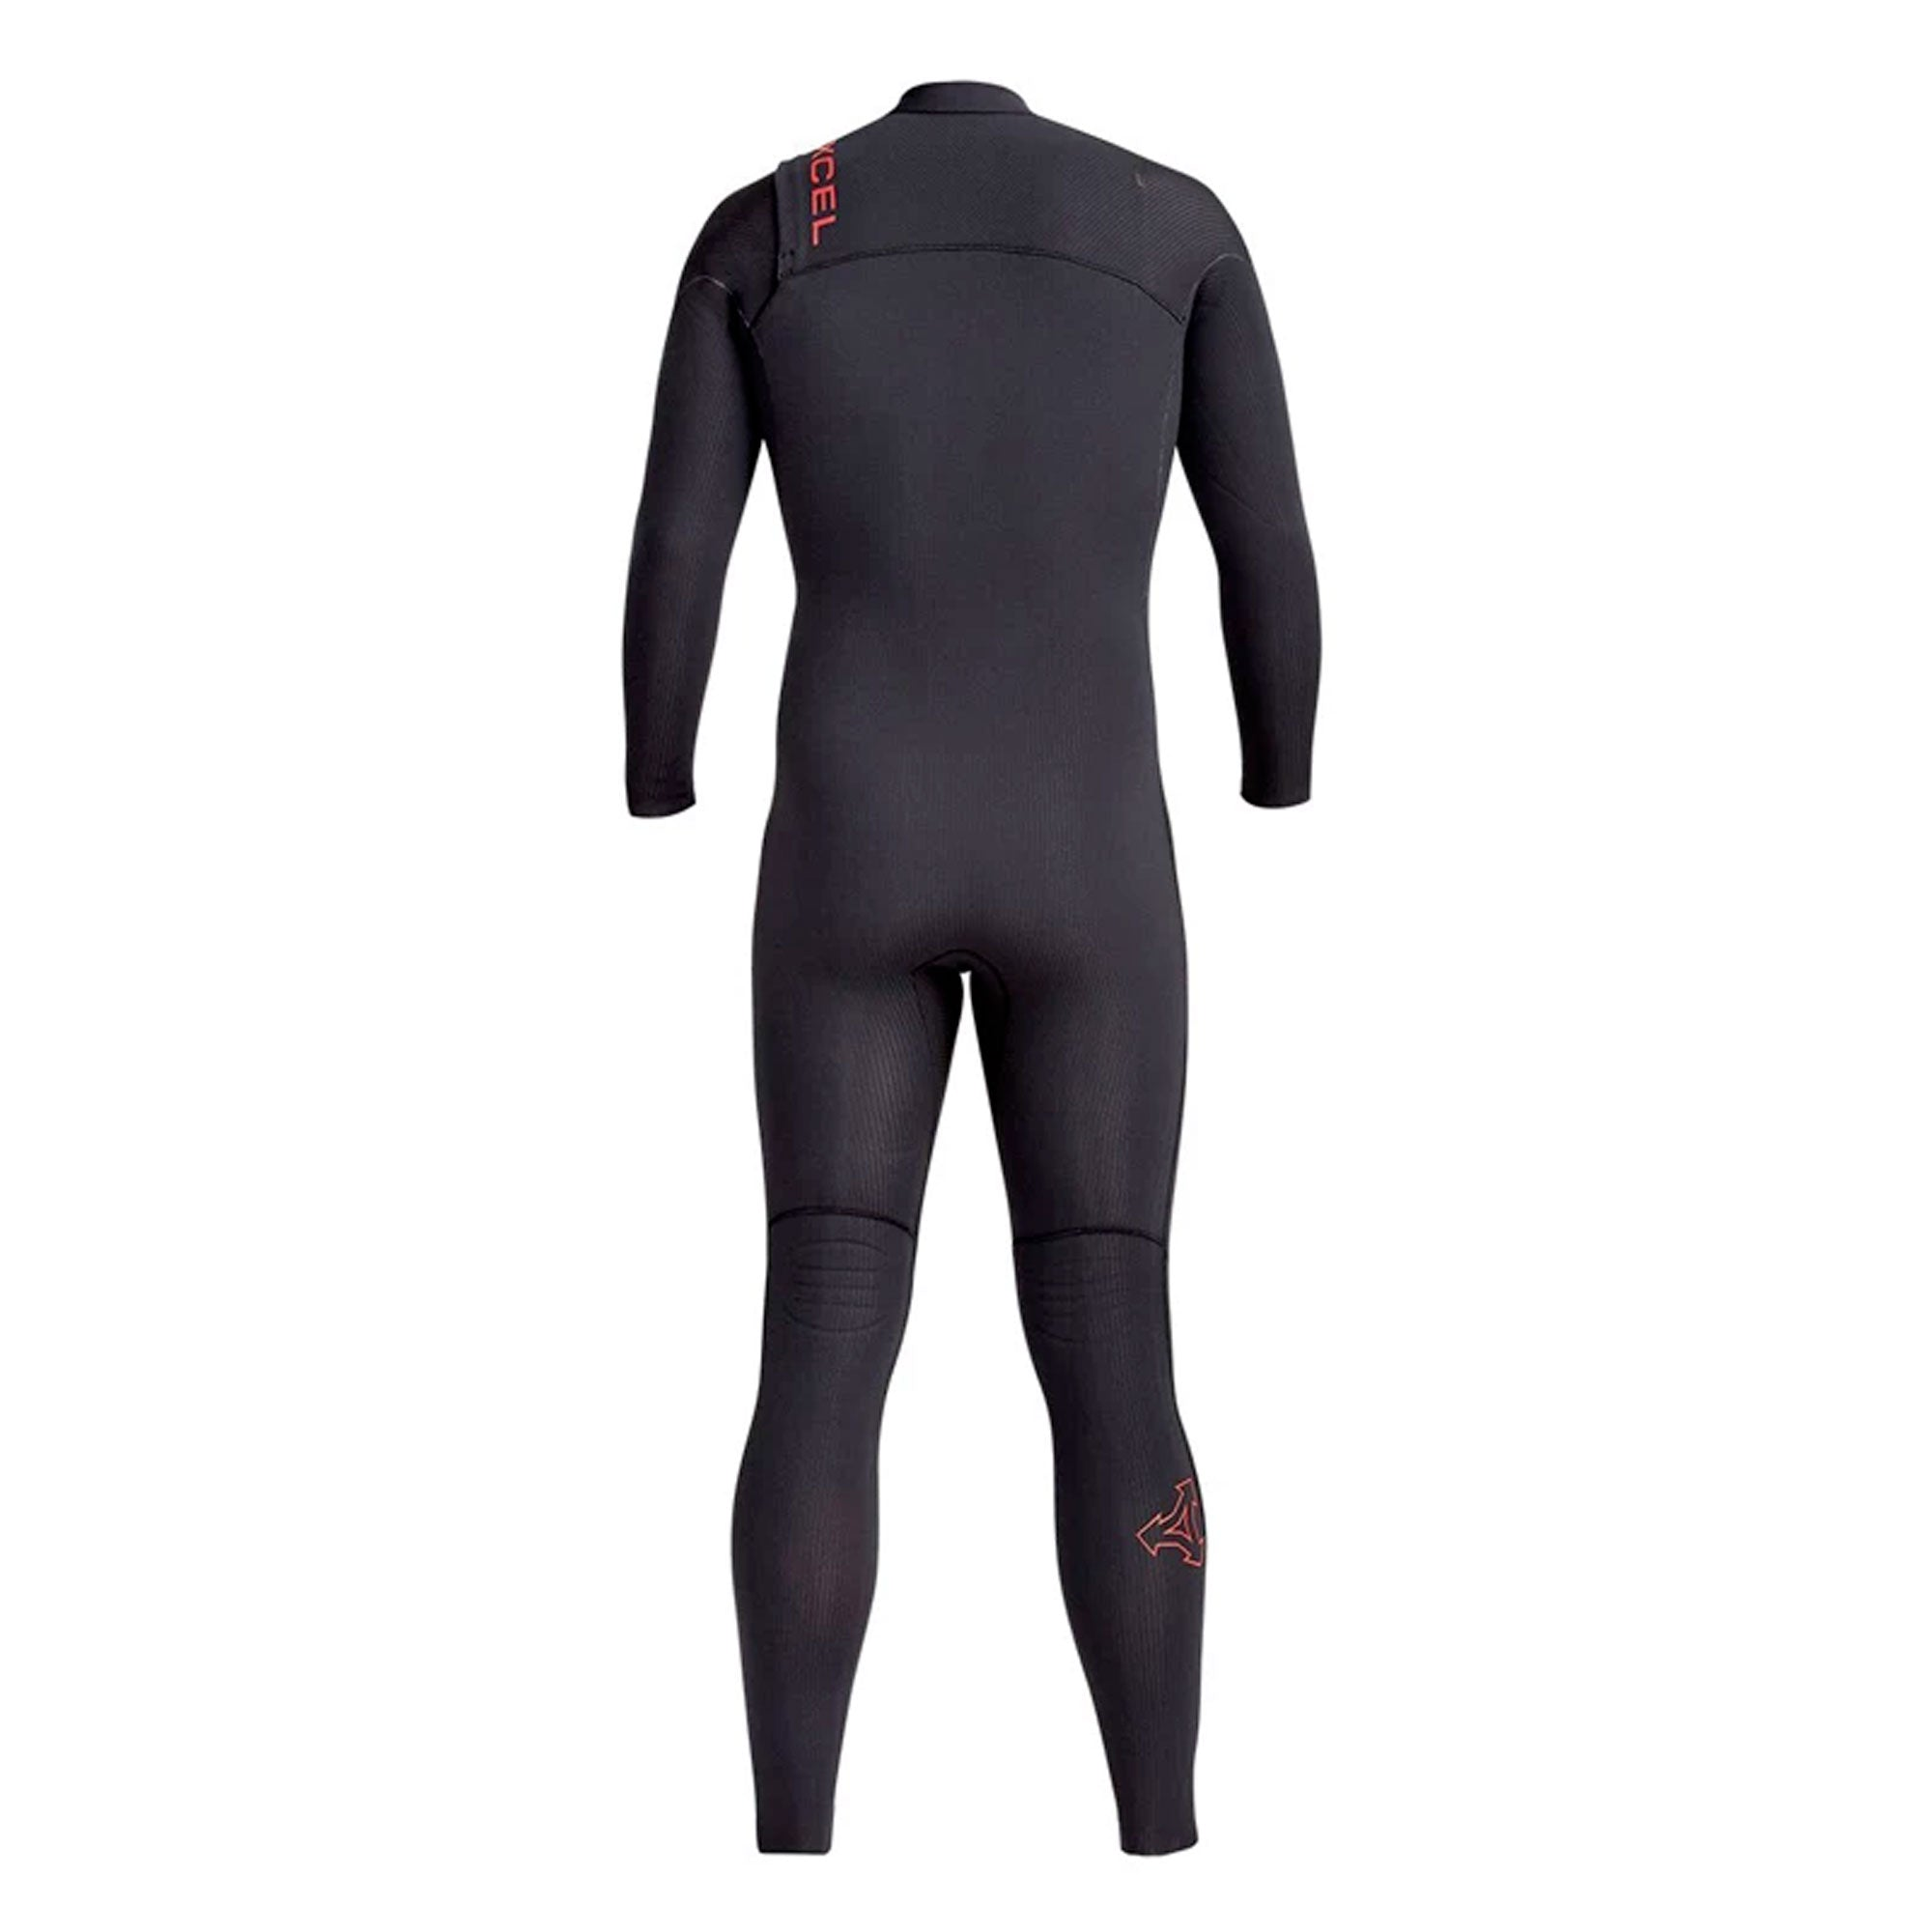 Xcel Men's Infiniti LTD 3/2 Chest-Zip Wetsuit